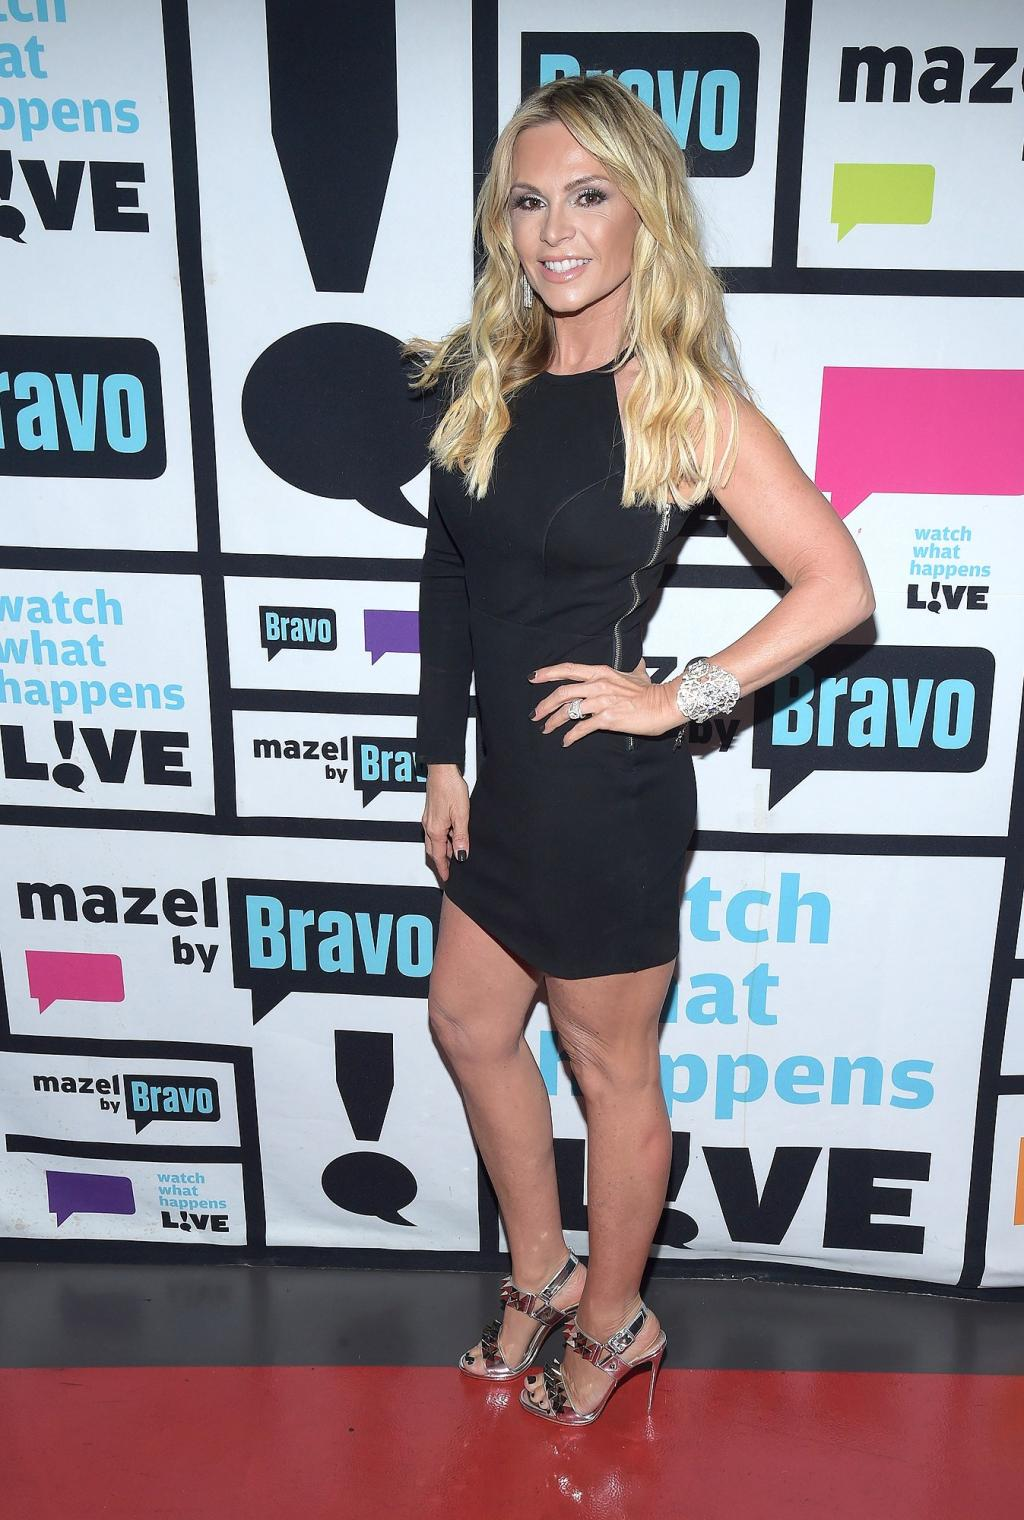 Tamra Judge Says Her Relationship with Estranged Daughter Is    Still Very Difficult '  But They   re    Making  Progress